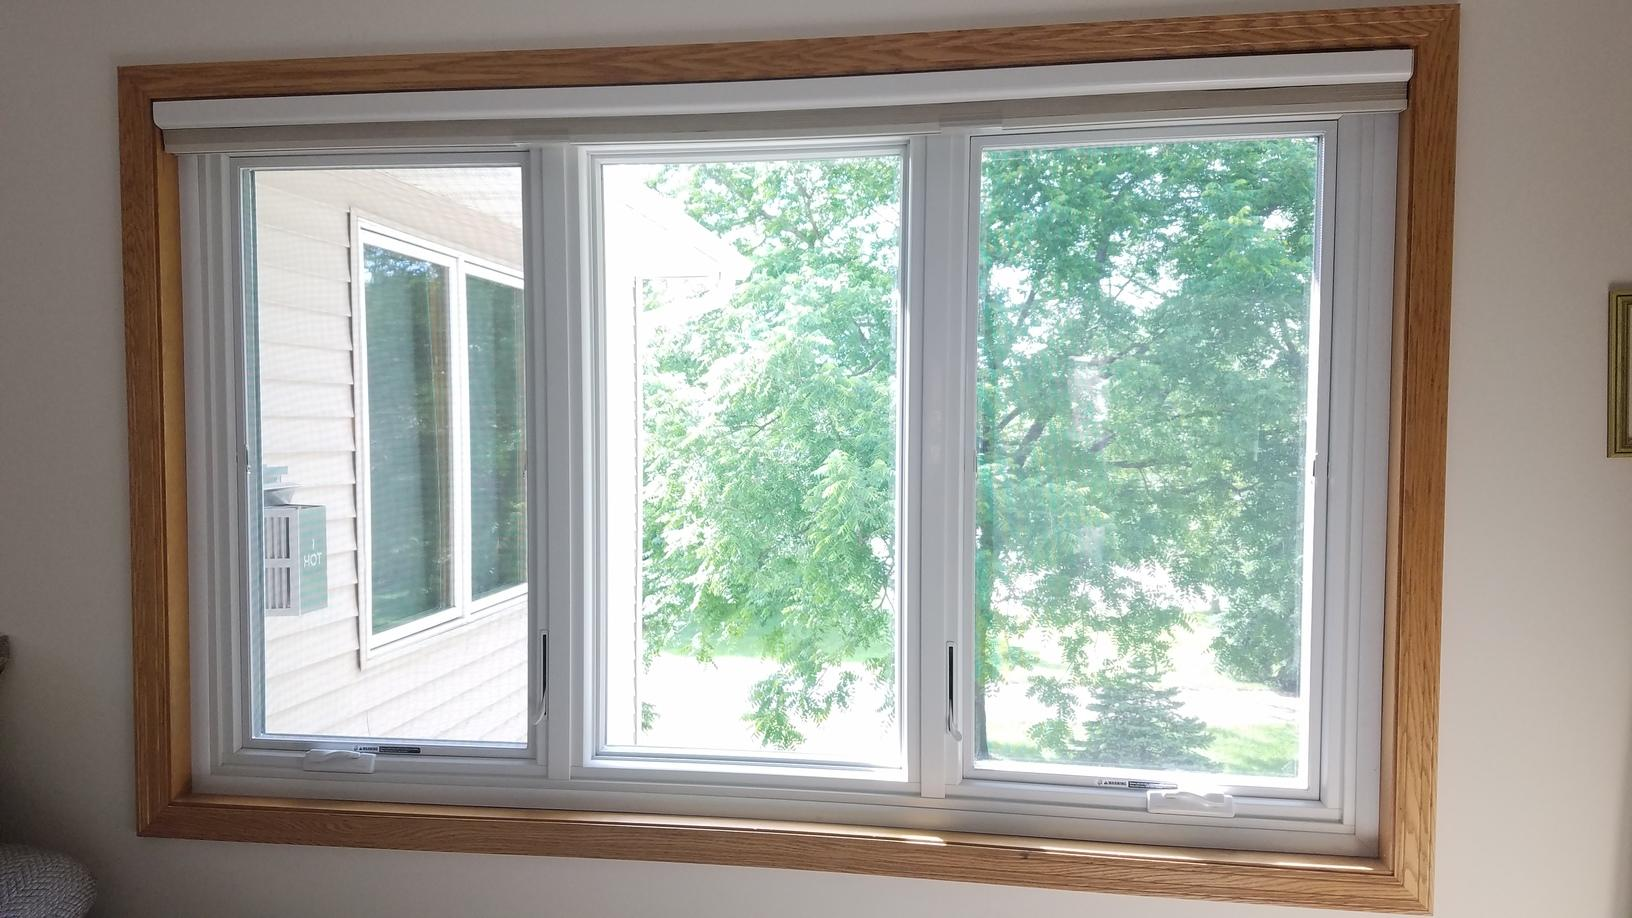 Replacement Windows in Northfield - After Photo